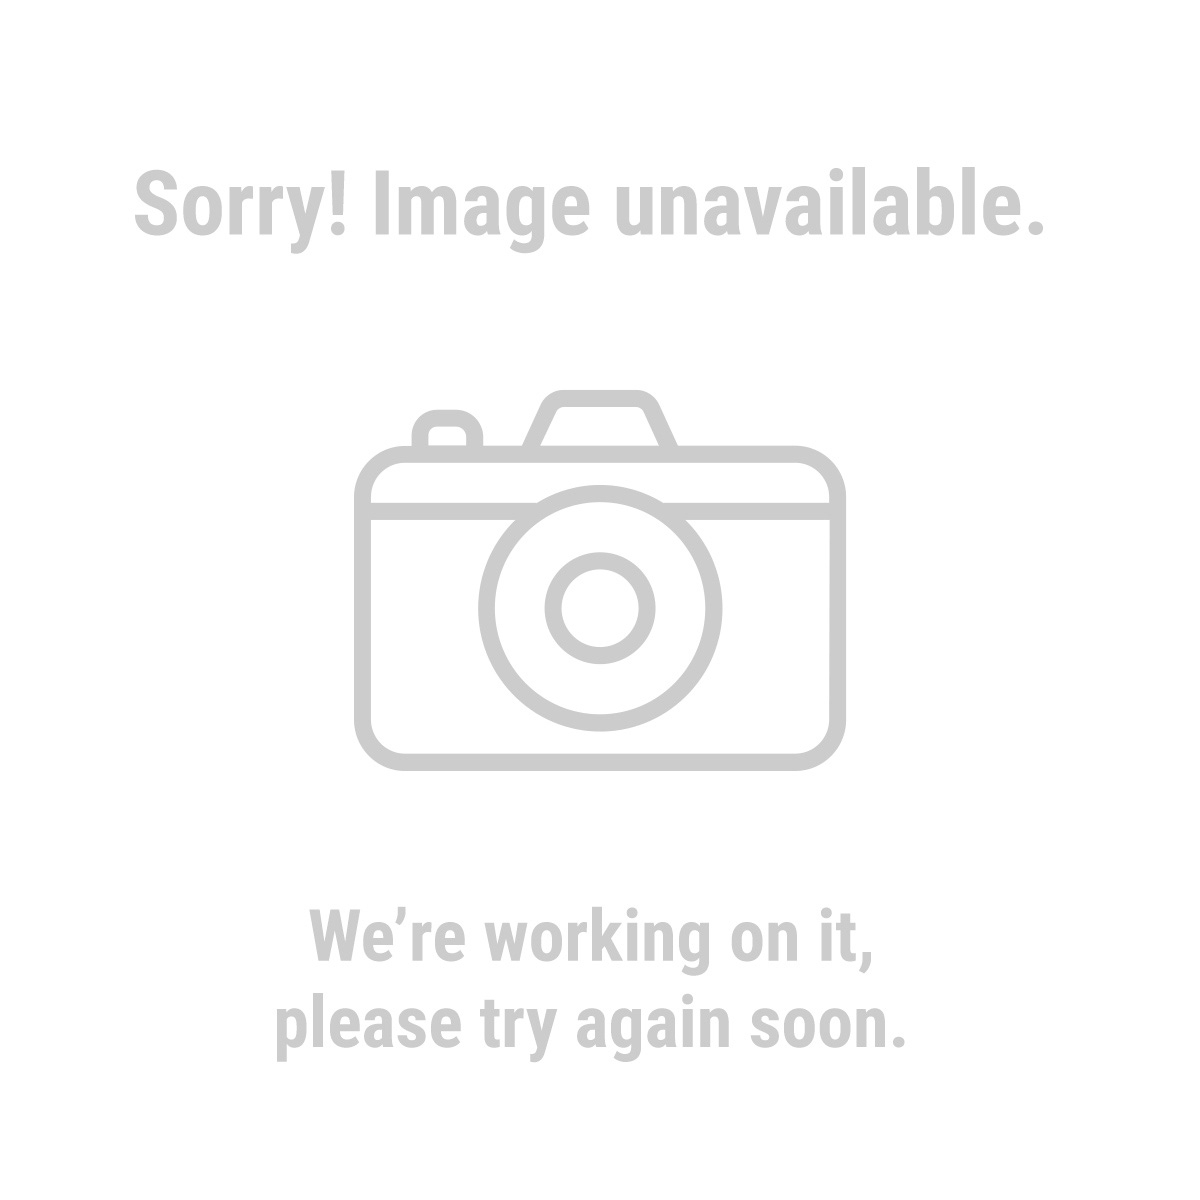 Cen-Tech 62359 Digital Inspection Camera